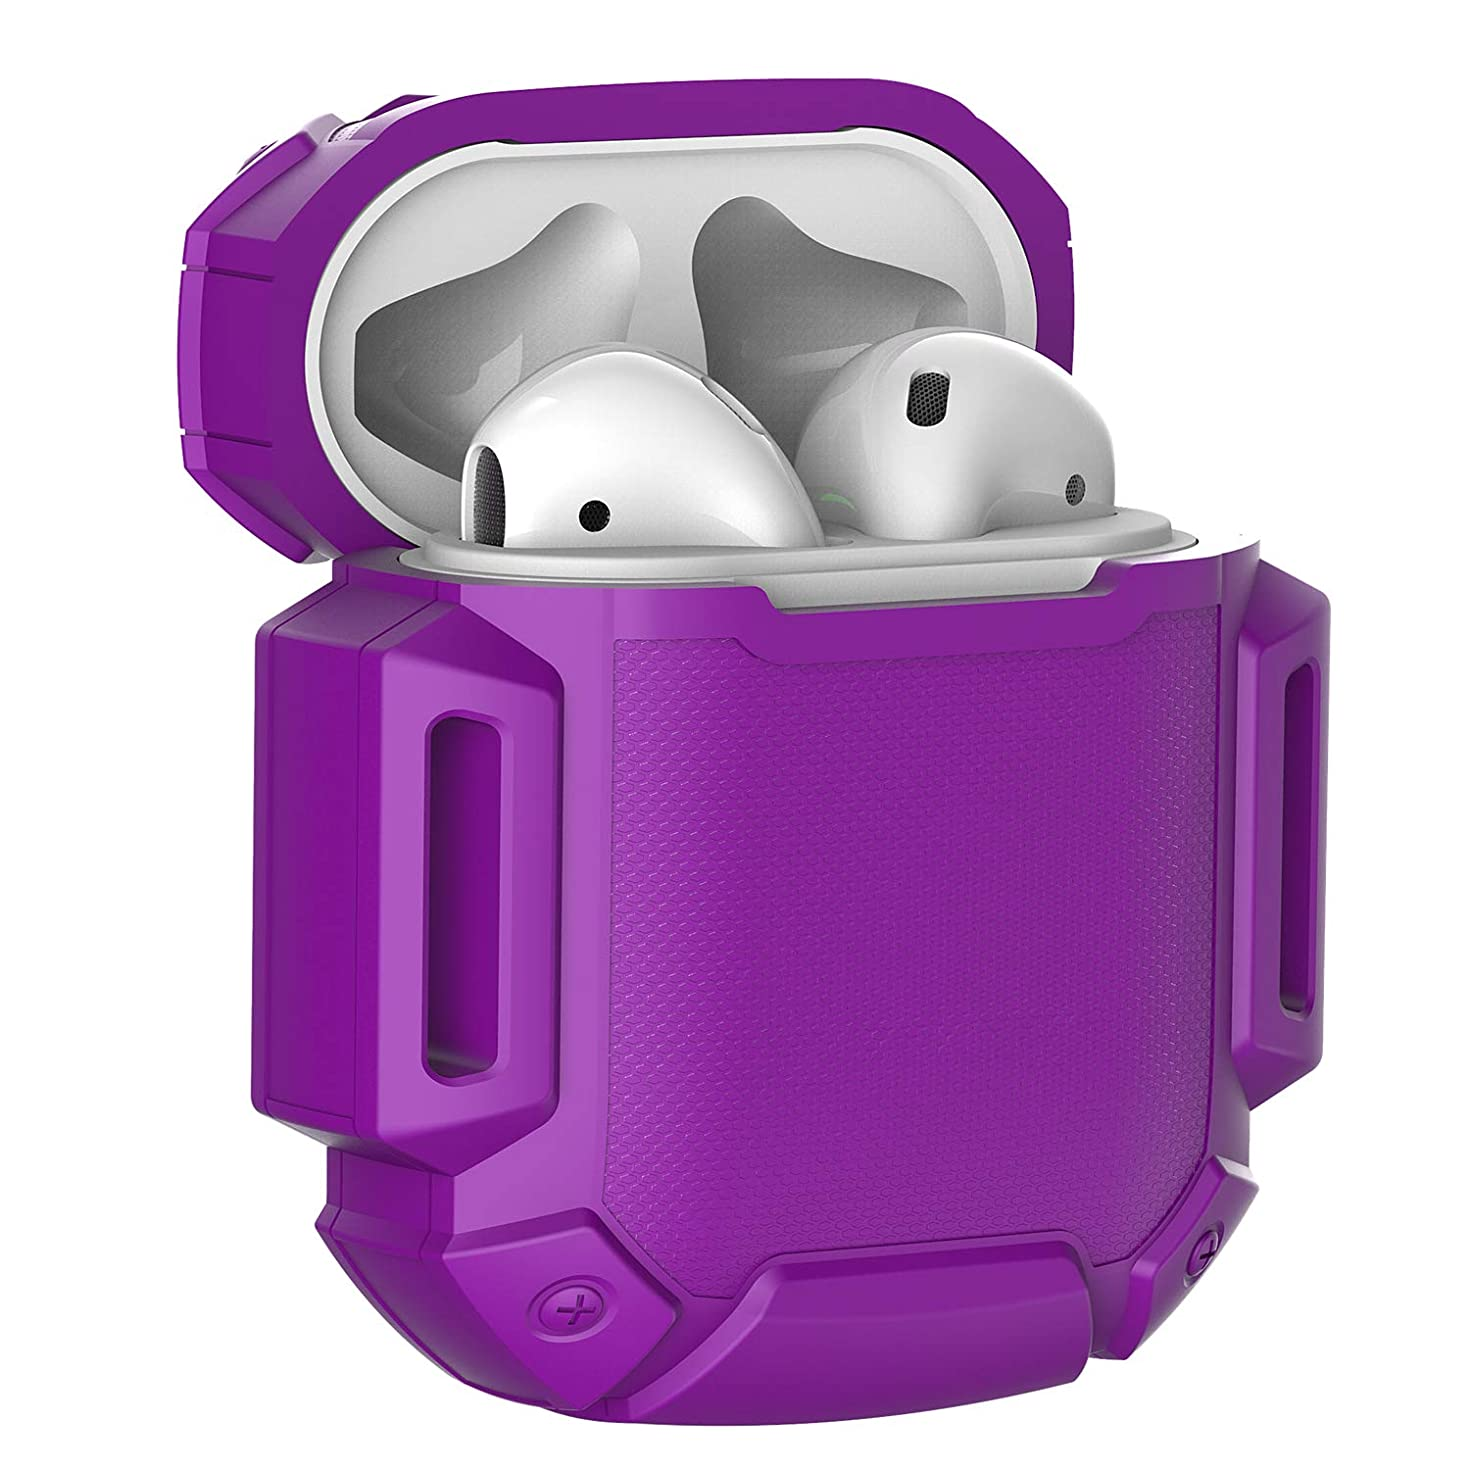 Moretek Silicone Protective Airpods Accessories Cases Cover for Apple Airpods & Airpods2 & Airpods 2 Charging Case (Purple)